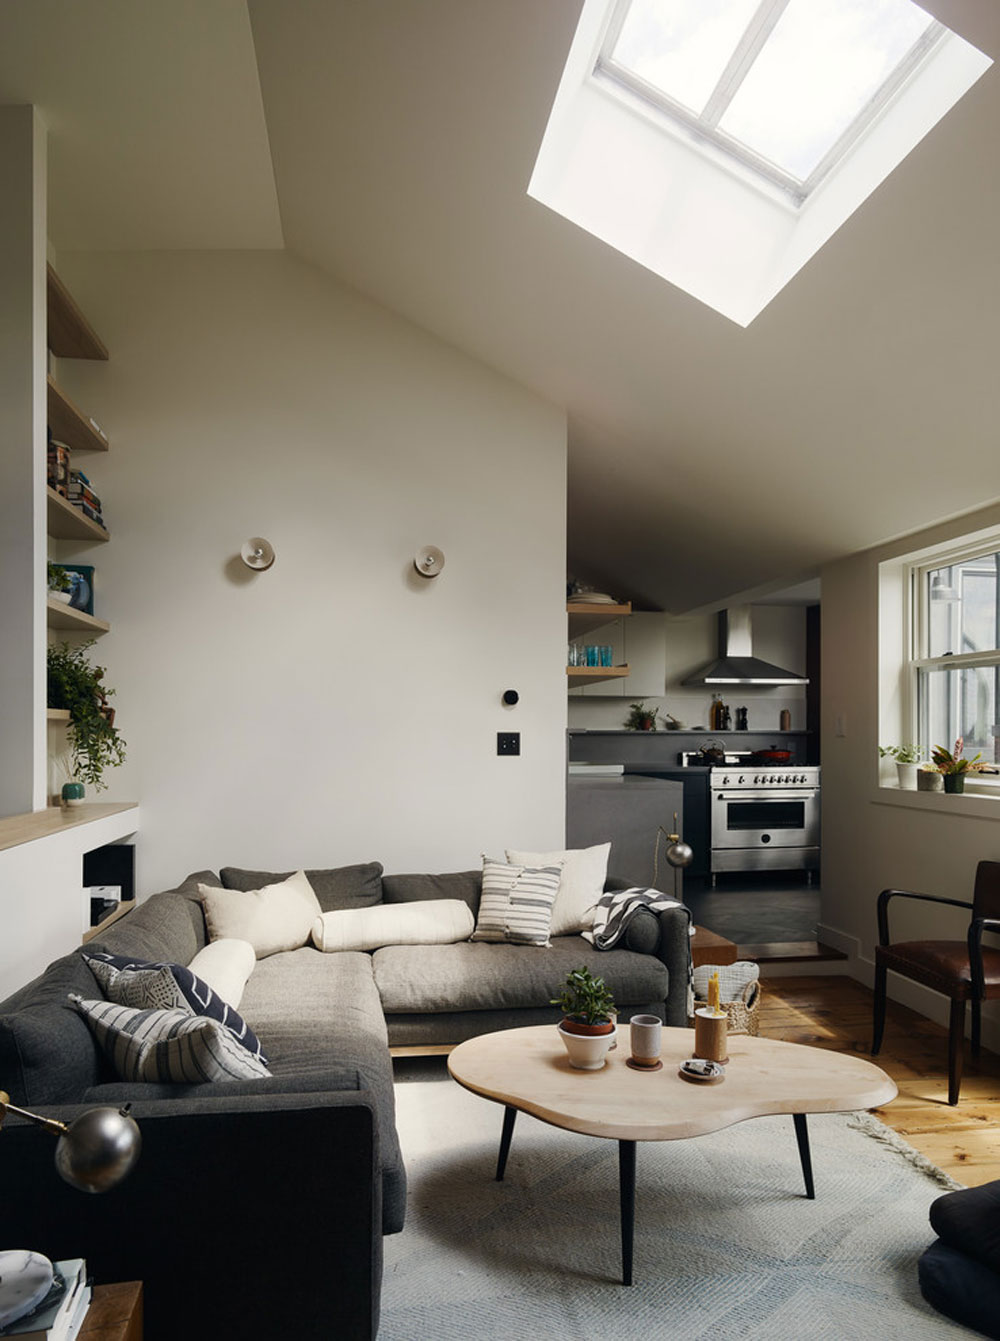 State-Street-by-General-Assembly-1 Small apartment living room ideas on a budget